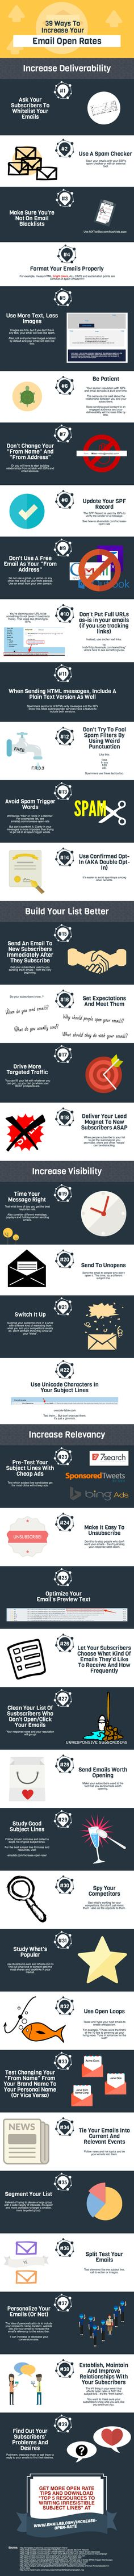 Email Marketing: 39 Ways to Increase Your Open Rates